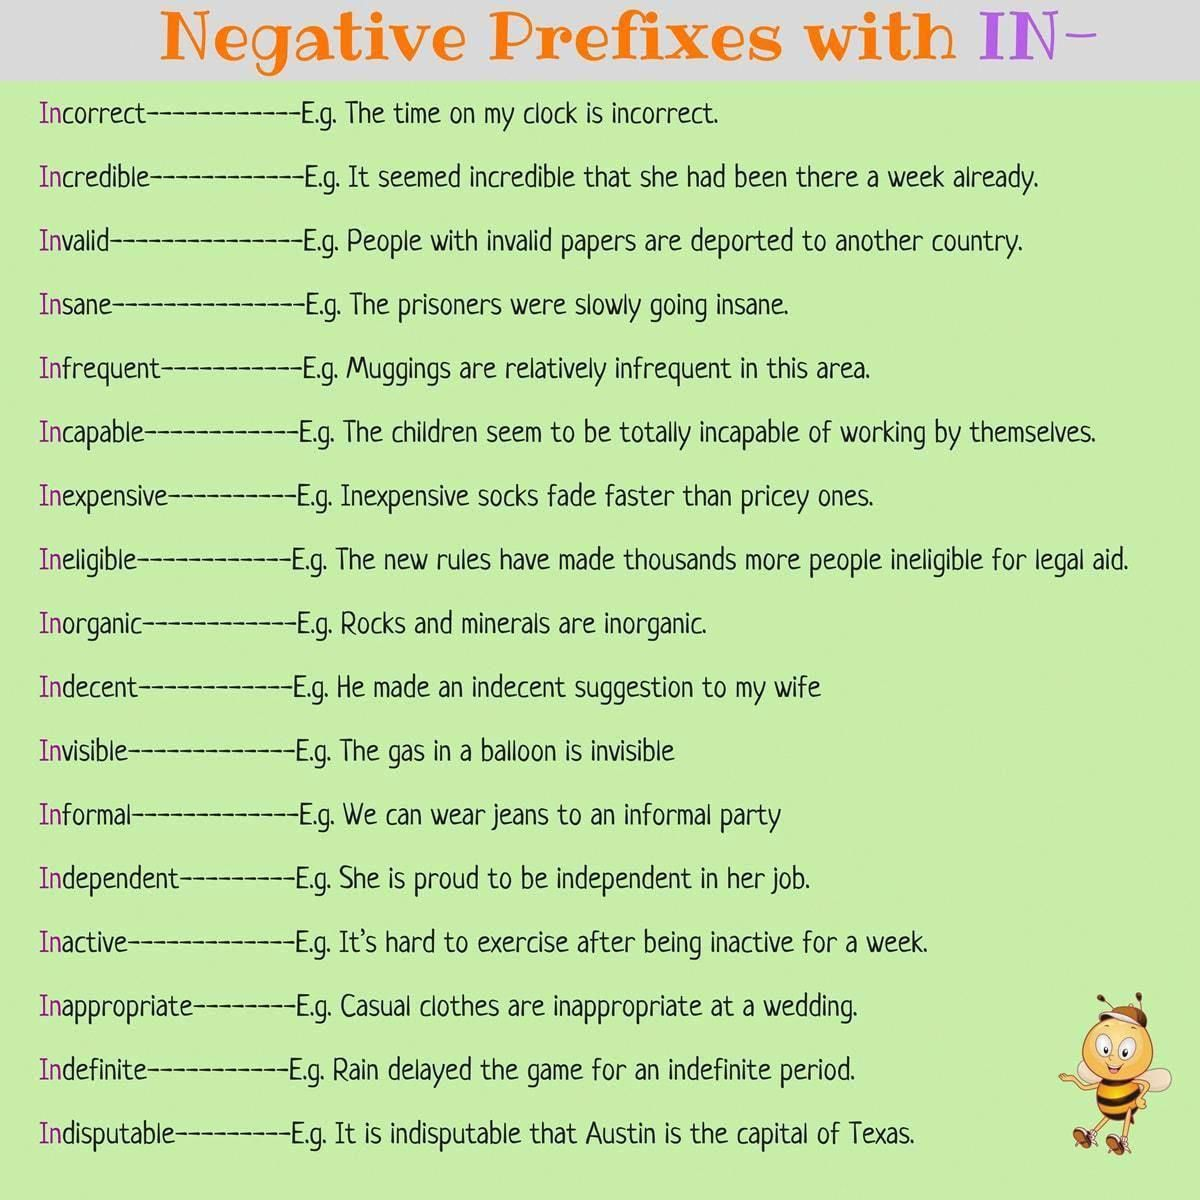 Learn English Vocabulary With Negative Prefixes With Dis